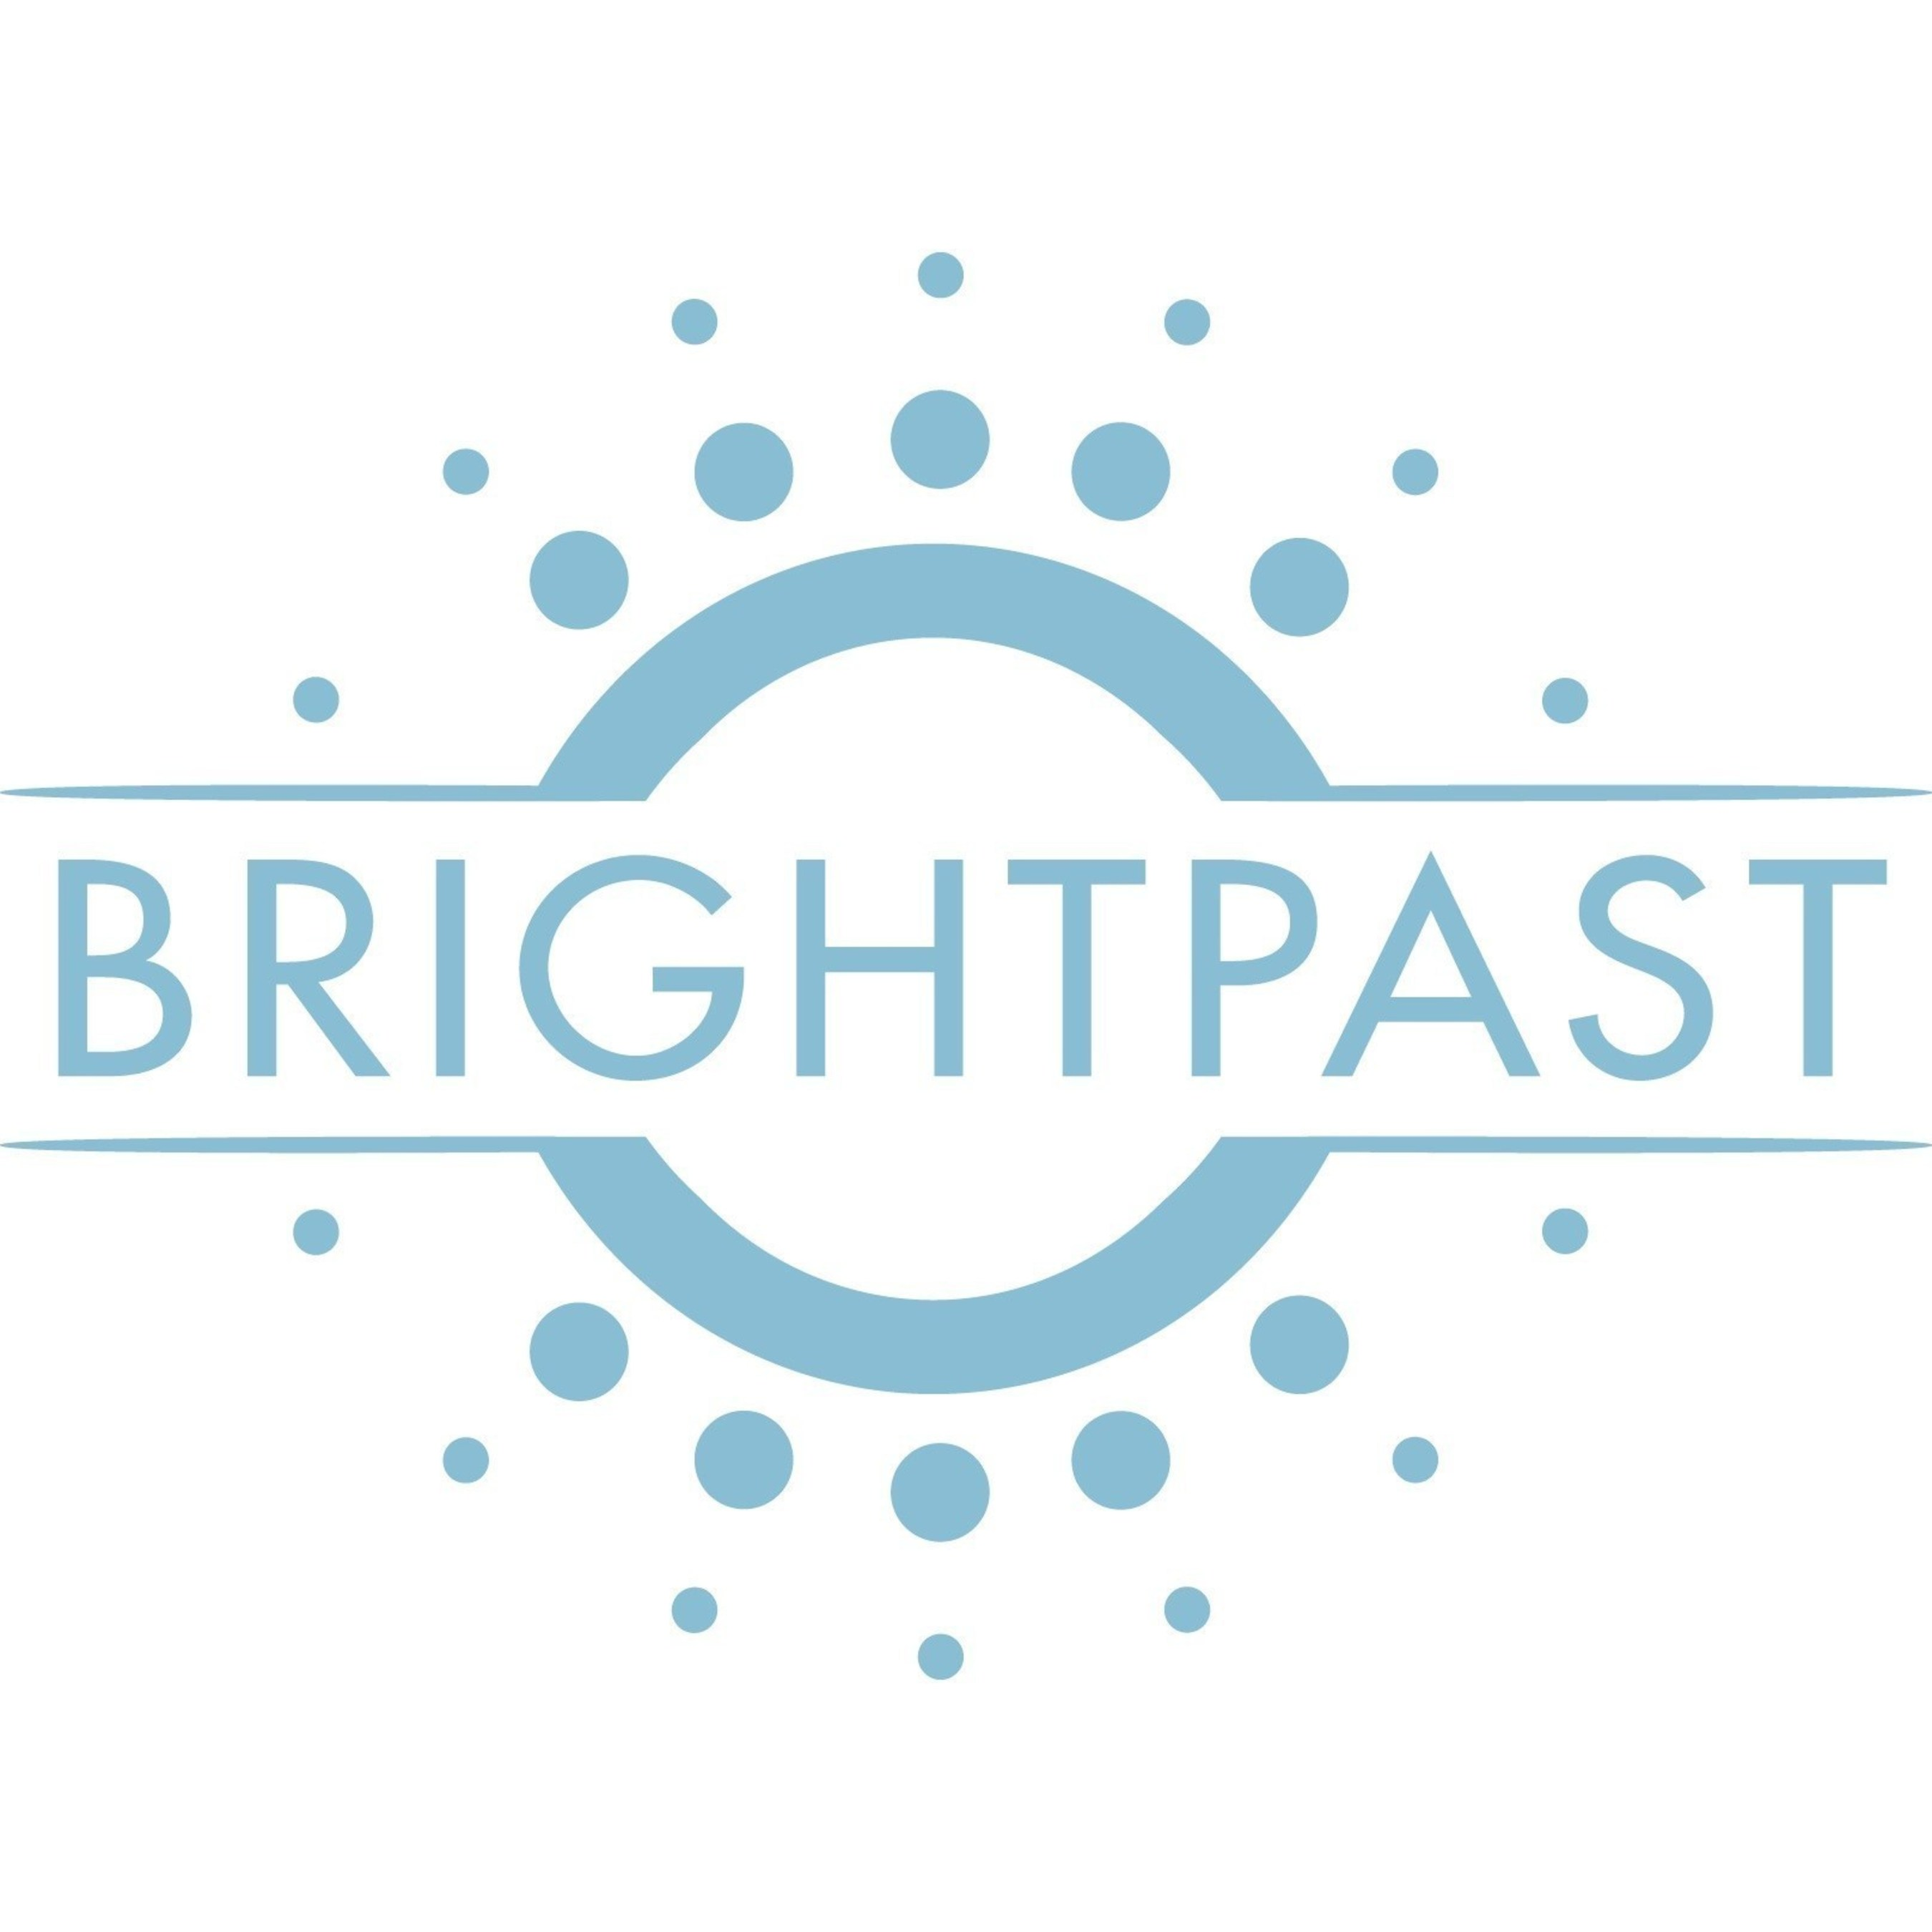 Reputation Management Company BrightPast Announces Expanded Product Offerings and Service Coverage